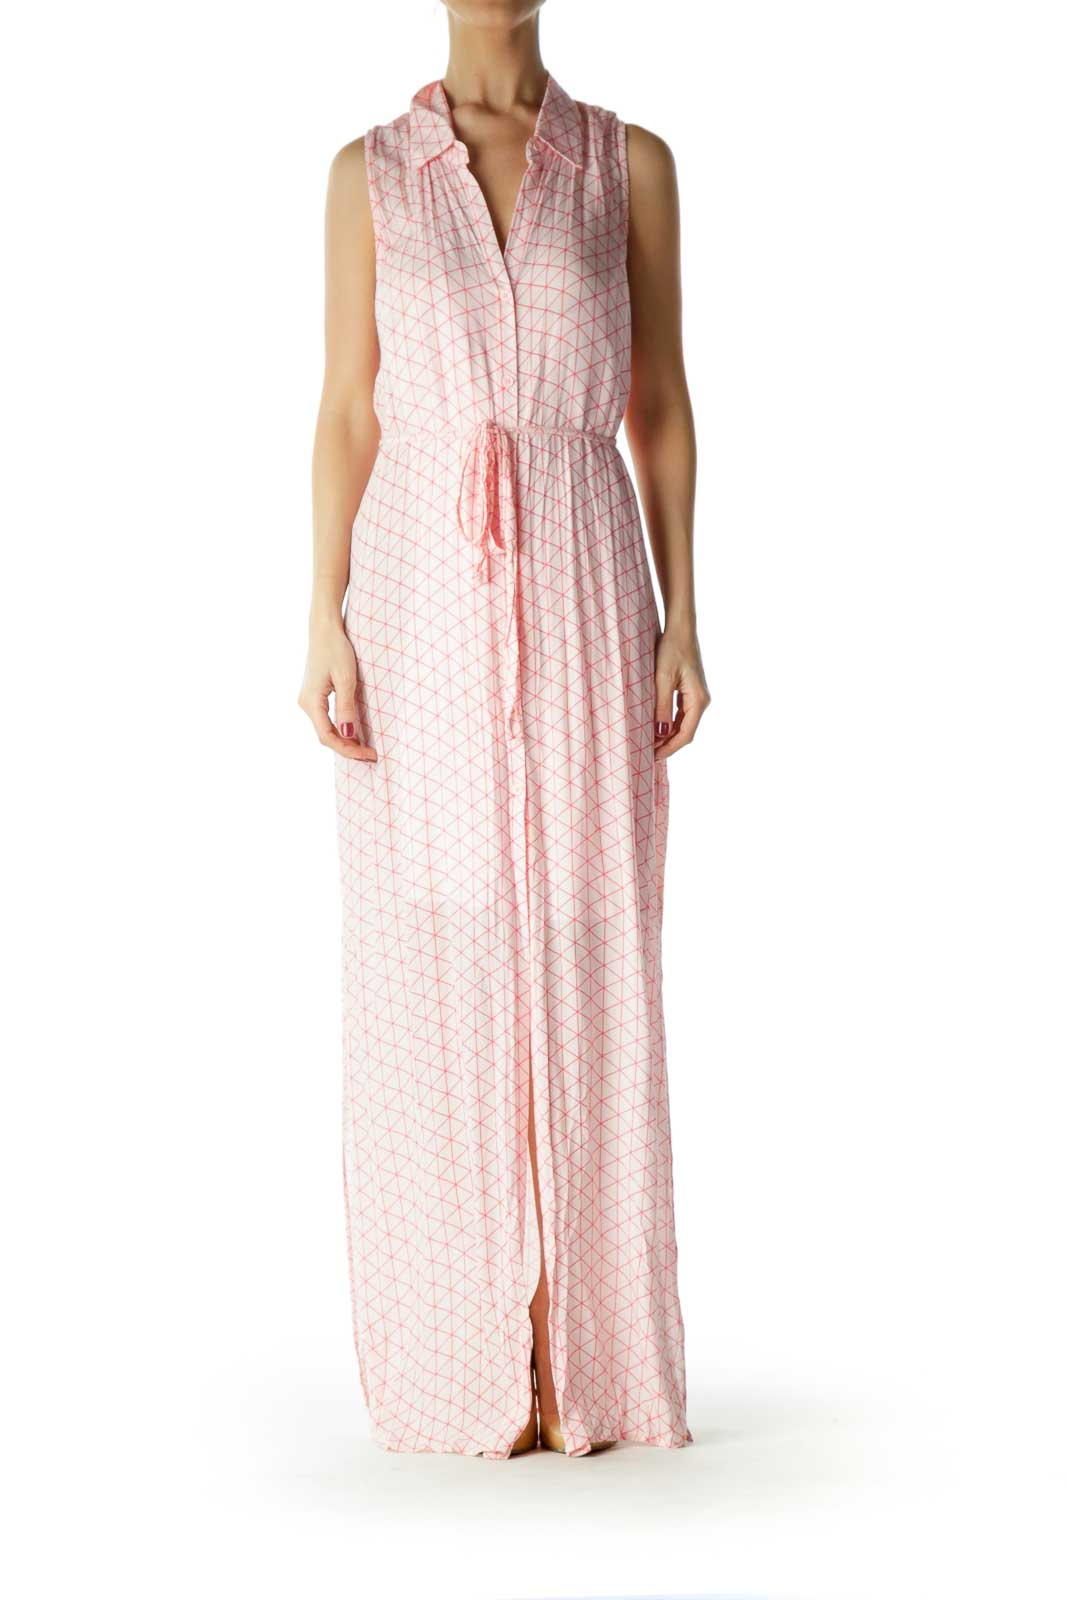 Pink Geometric Print Buttoned Day Dress